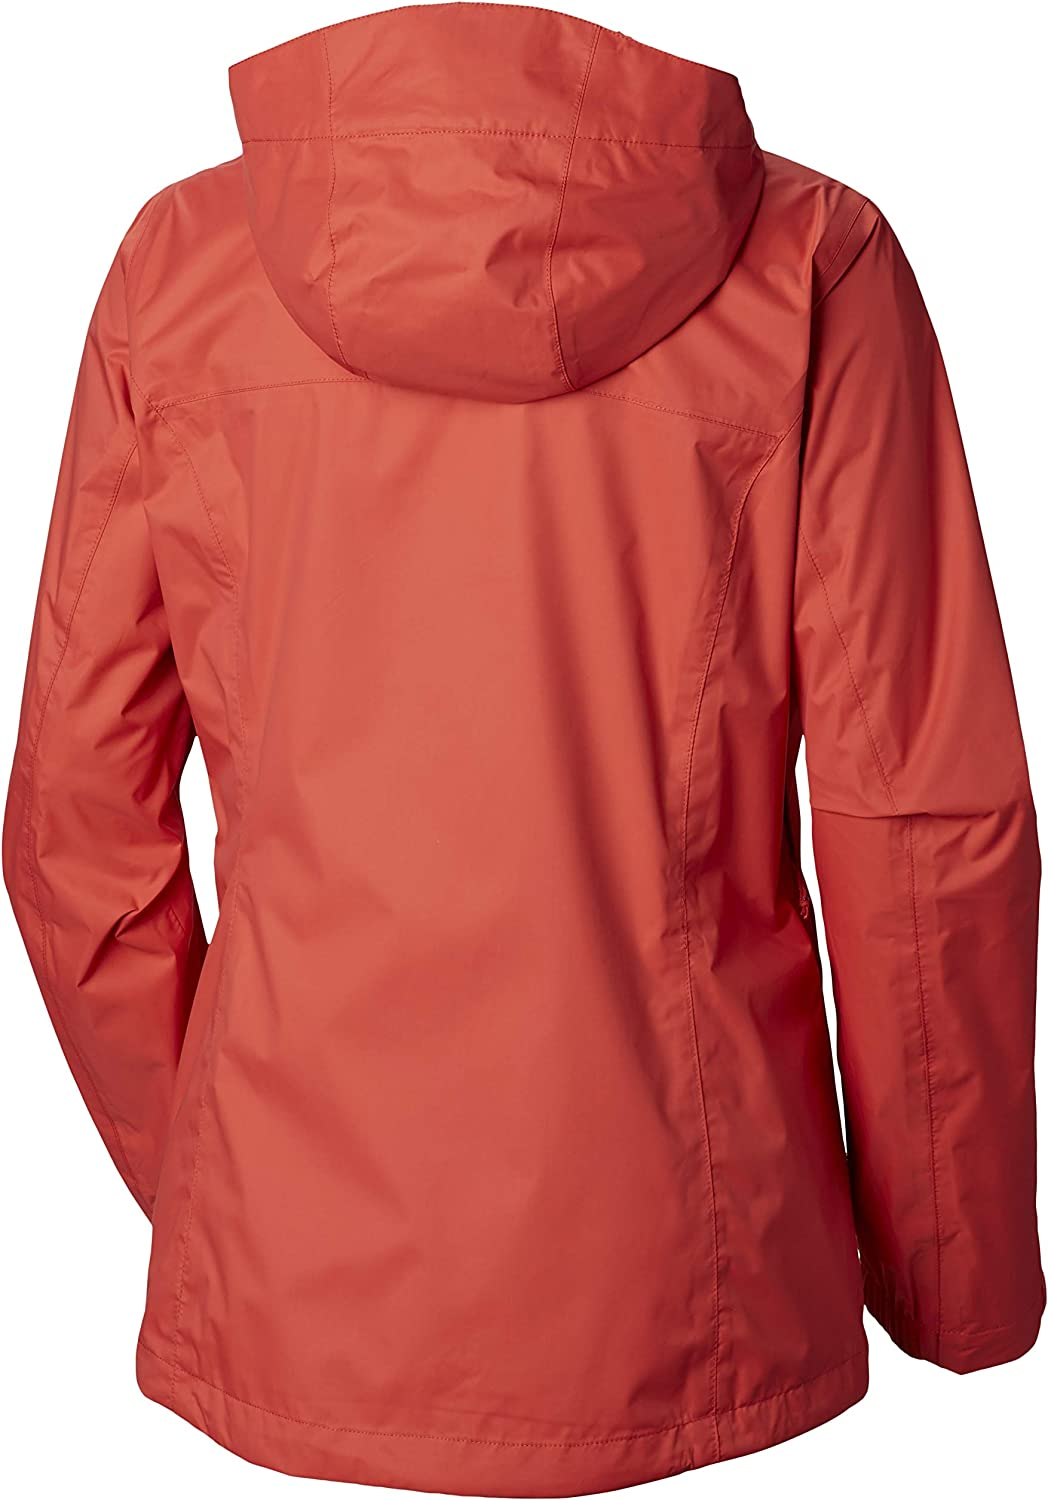 Columbia Top Pine Insulated Rain Jacket